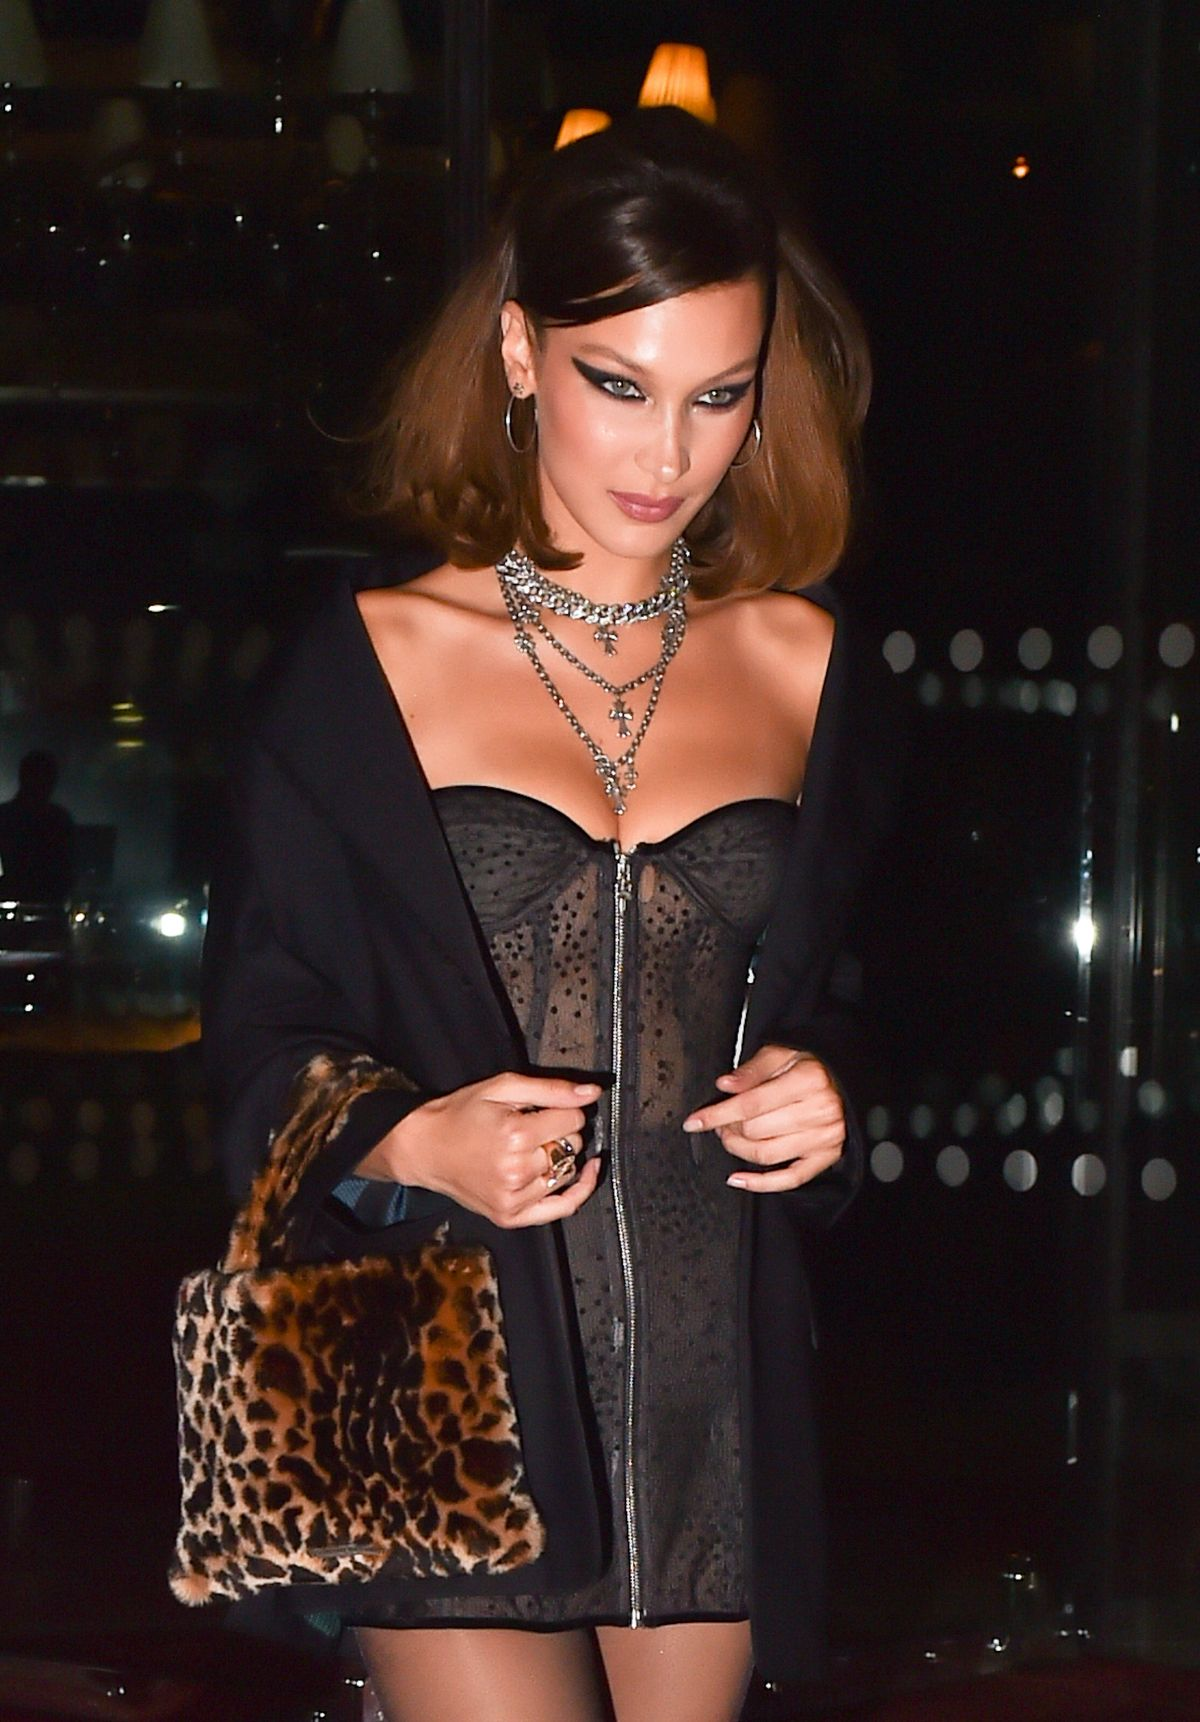 Bella Hadid Arrives At Chrome Hearts Event In Paris 09 25 2018